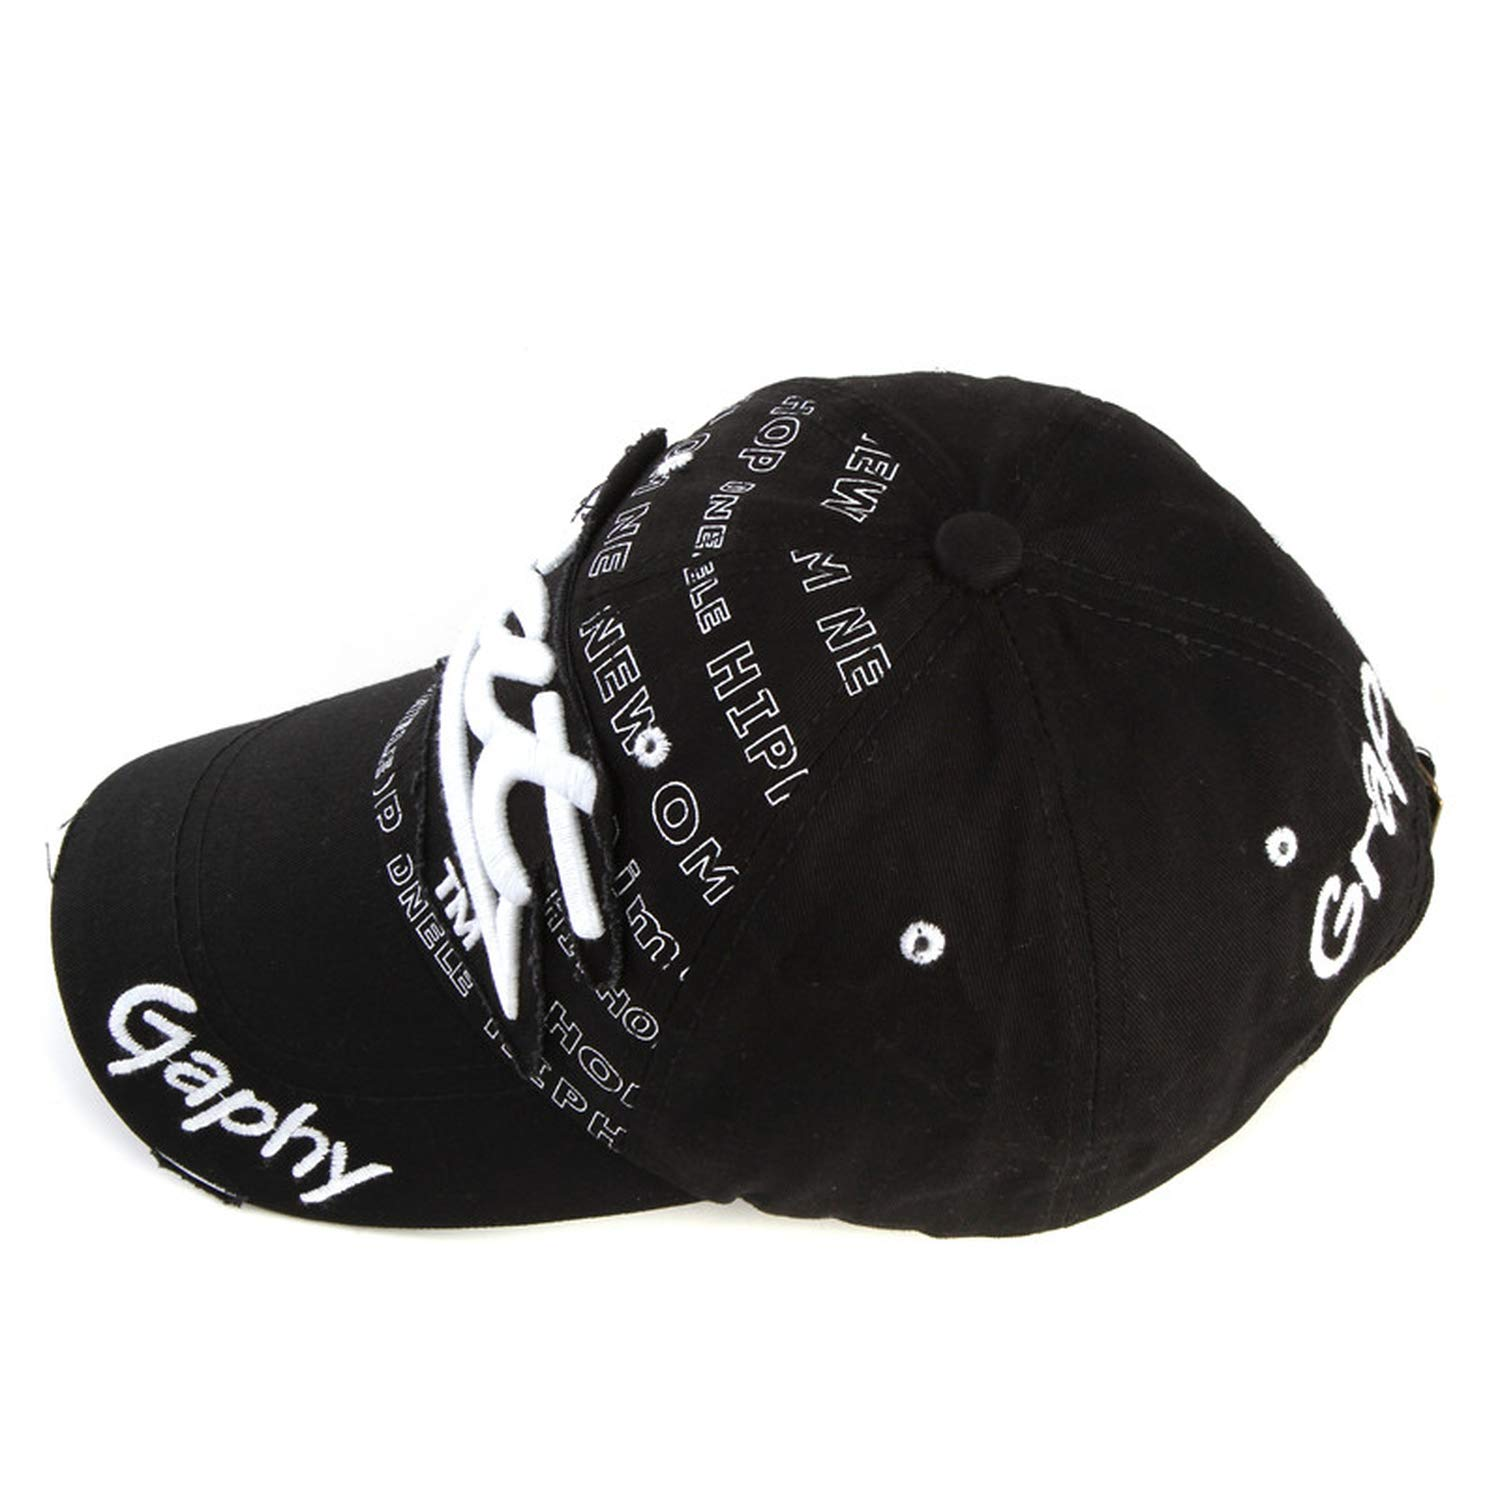 Xivikow Snapback Hats Baseball Cap Hats Hip hop Fitted Hats for Men Women Gorras Curved Brim Hats Damage Cap Black at Amazon Mens Clothing store: